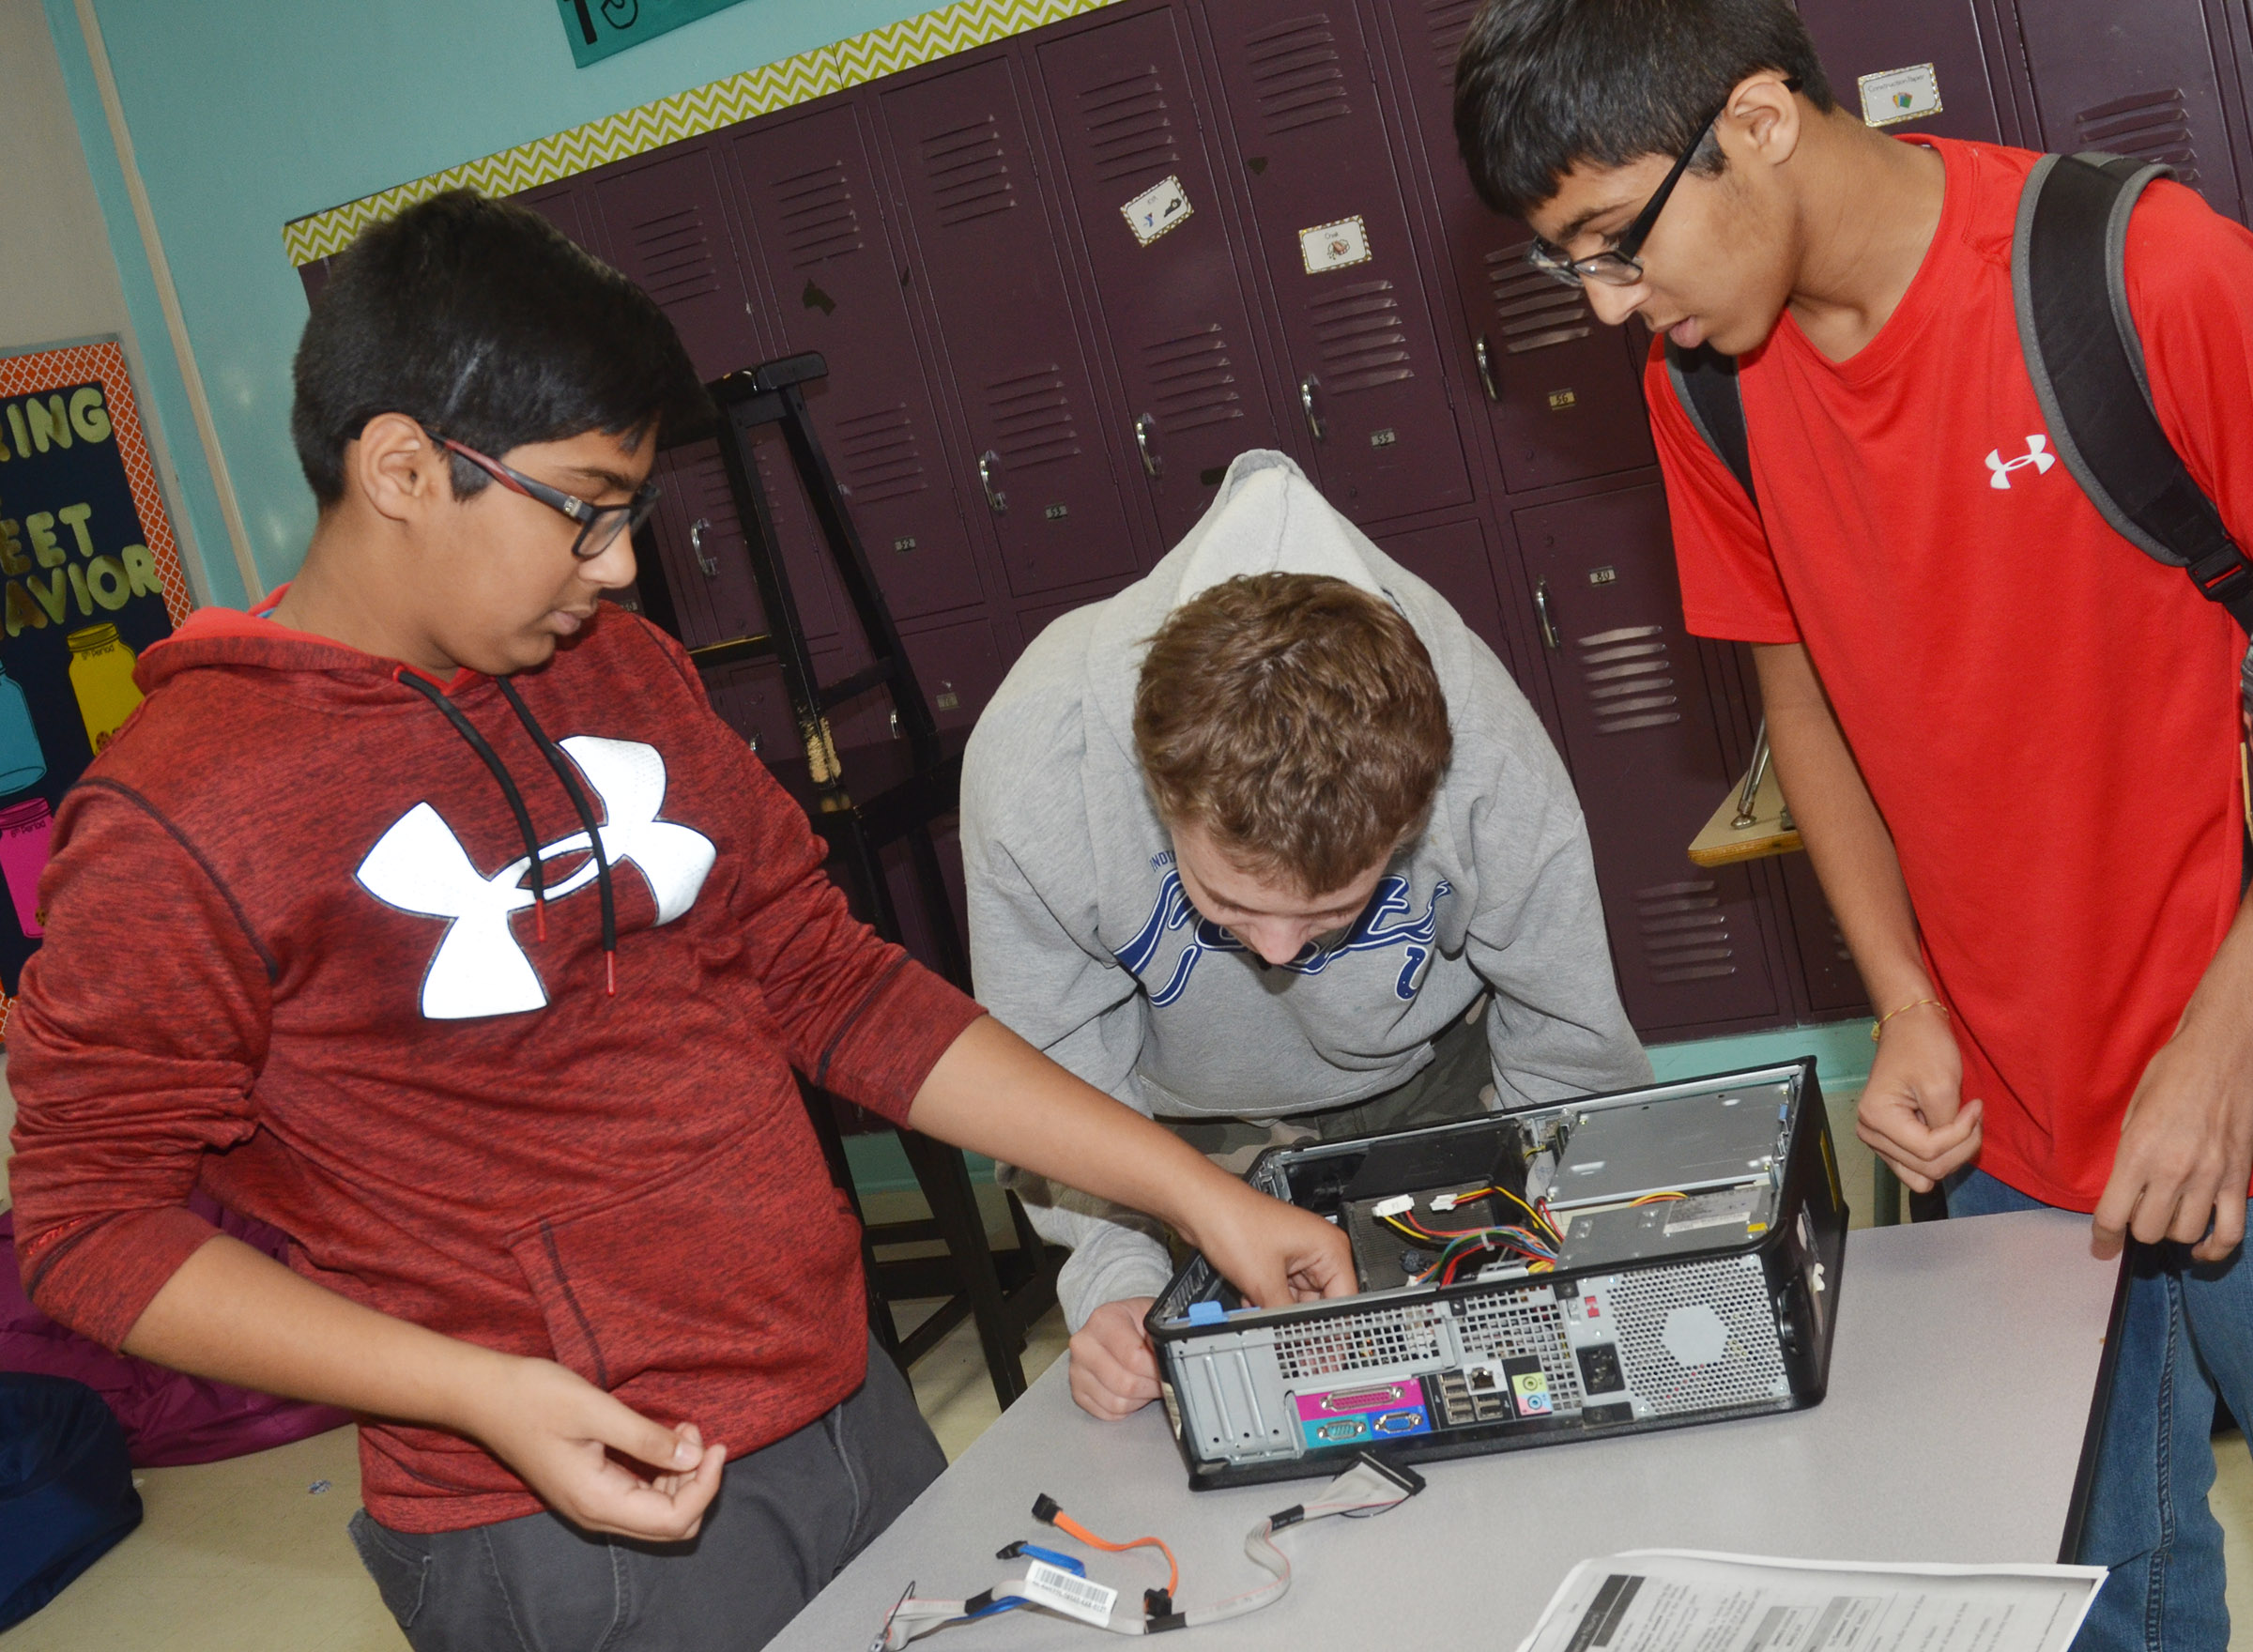 From left, CMS eighth-graders Yash Patel and Brandon Castellano and Campbellsville High School freshman Raj Patel work to repair a computer during the after-school study session on Friday, Oct. 27.